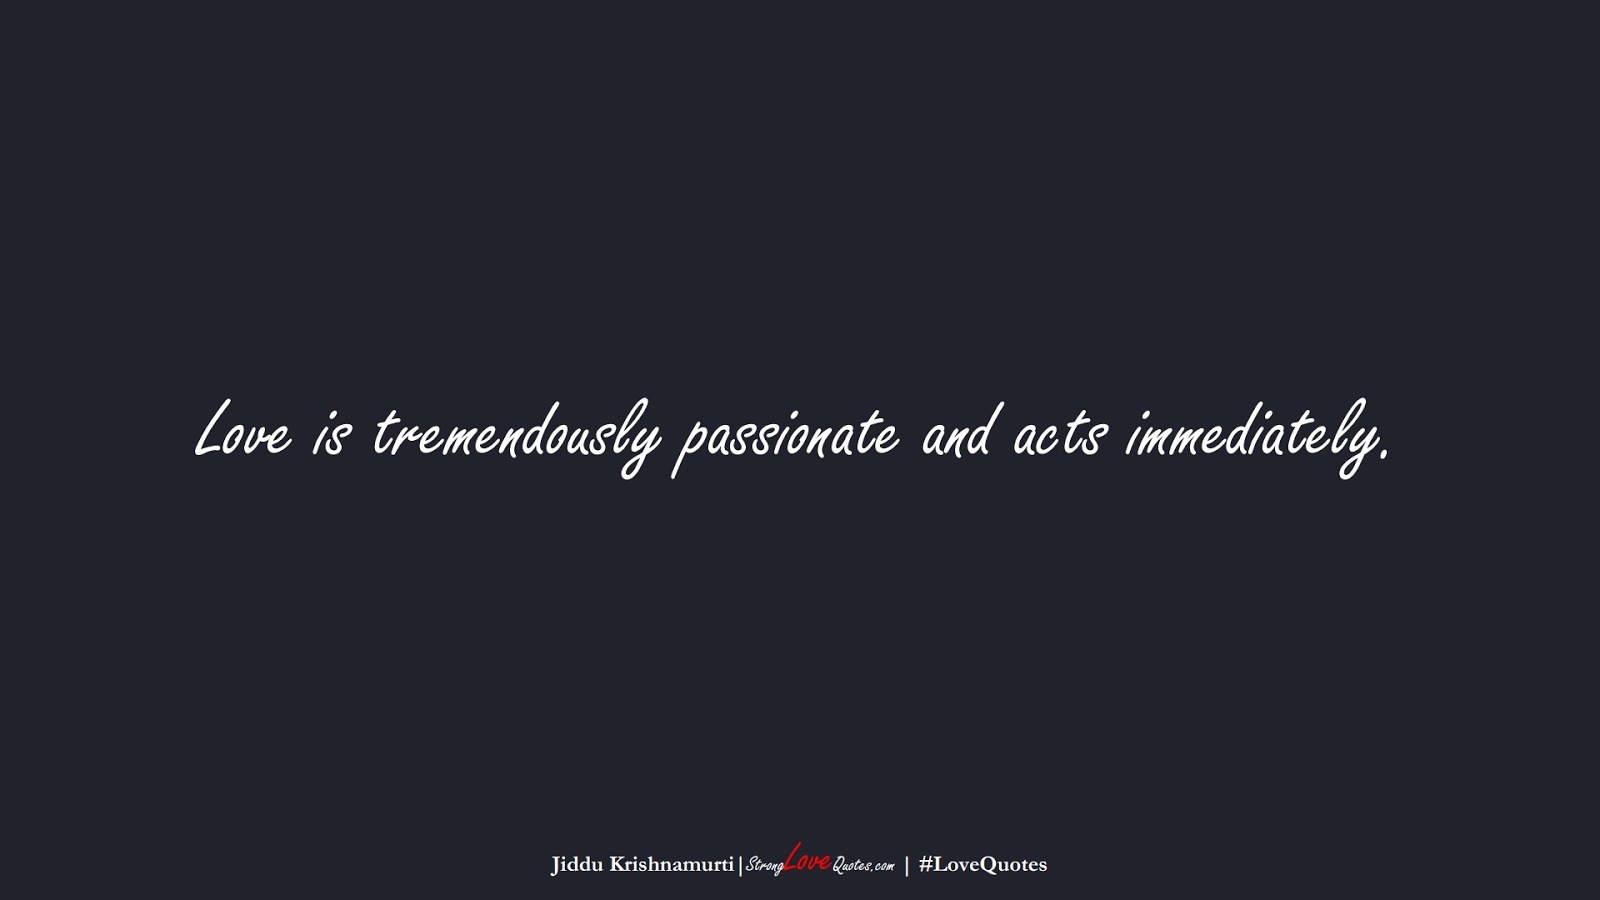 Love is tremendously passionate and acts immediately. (Jiddu Krishnamurti);  #LoveQuotes